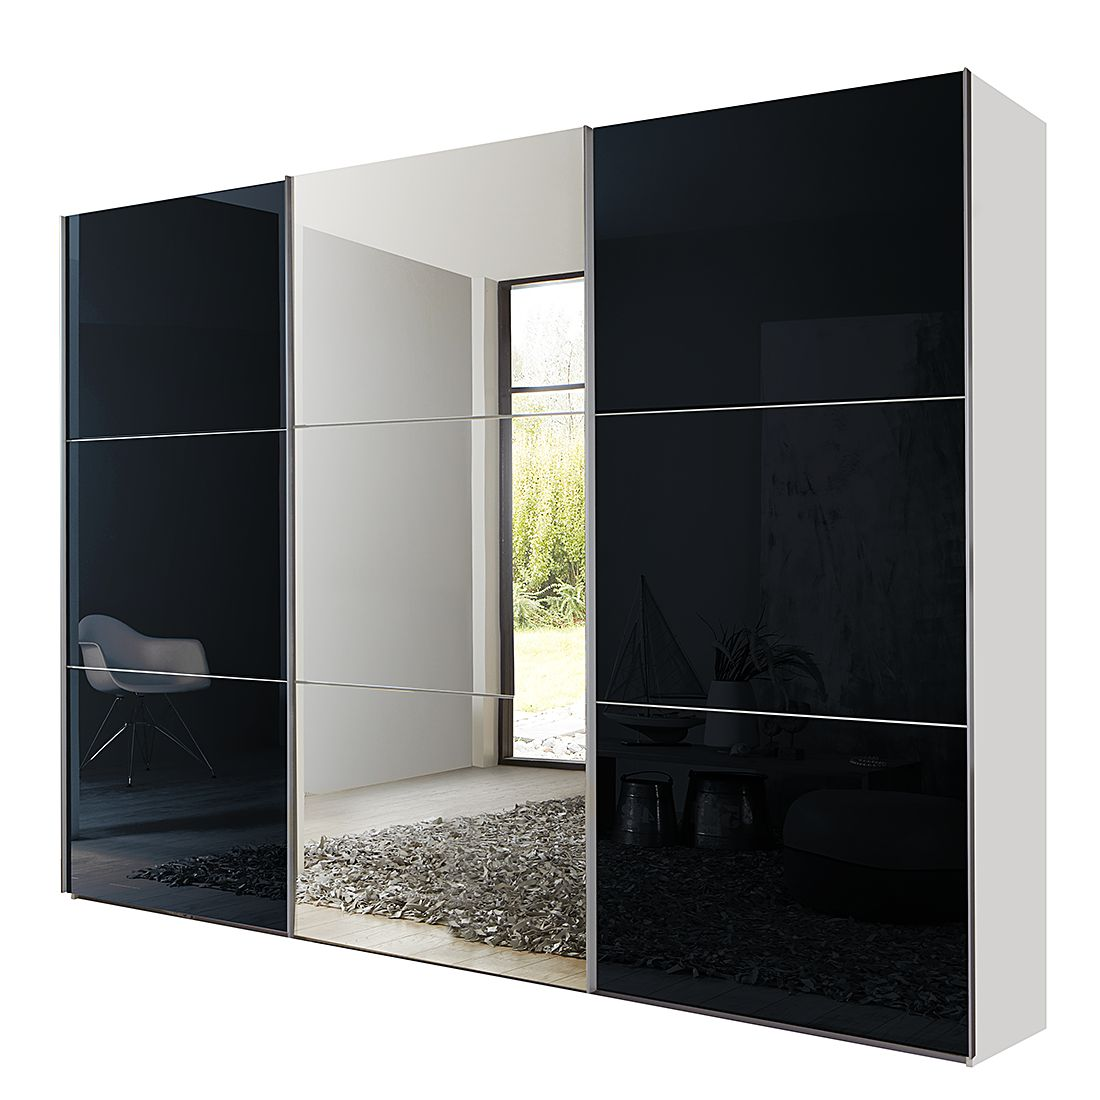 schwebet renschrank spiegel preisvergleich die besten angebote online kaufen. Black Bedroom Furniture Sets. Home Design Ideas